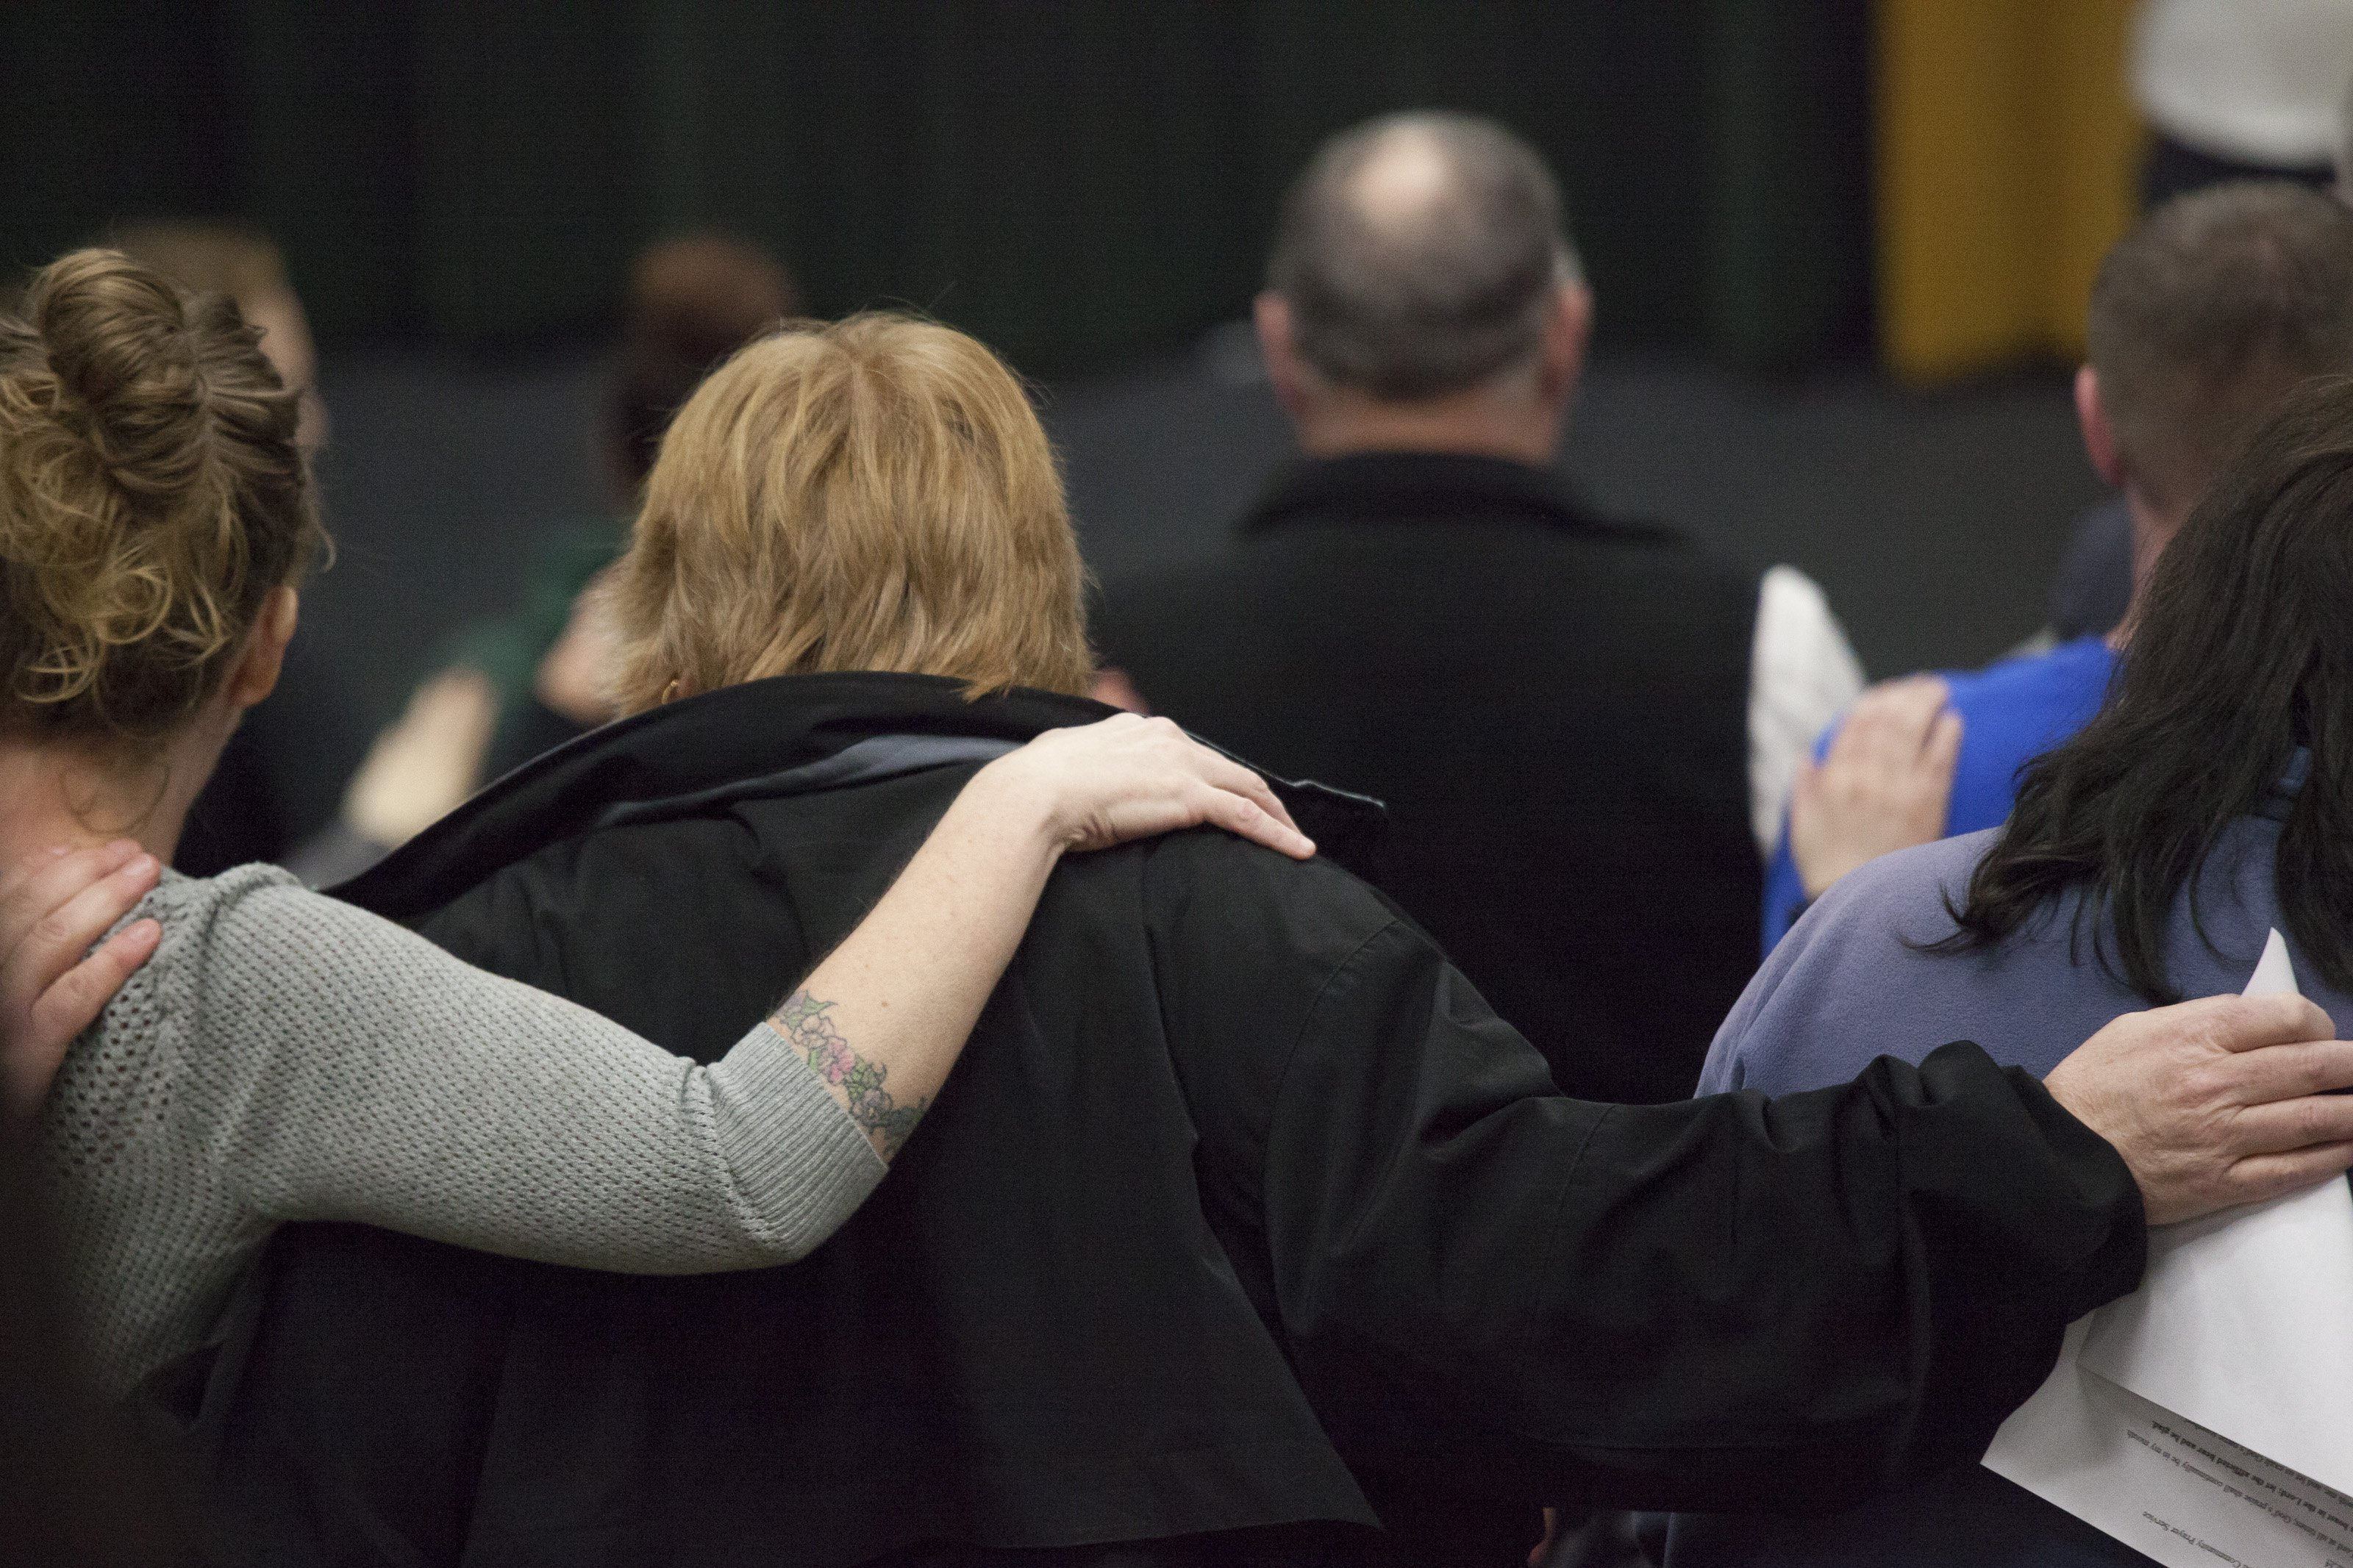 Residents attend a community prayer service on March 26, 2014 in Darrington, Wash.